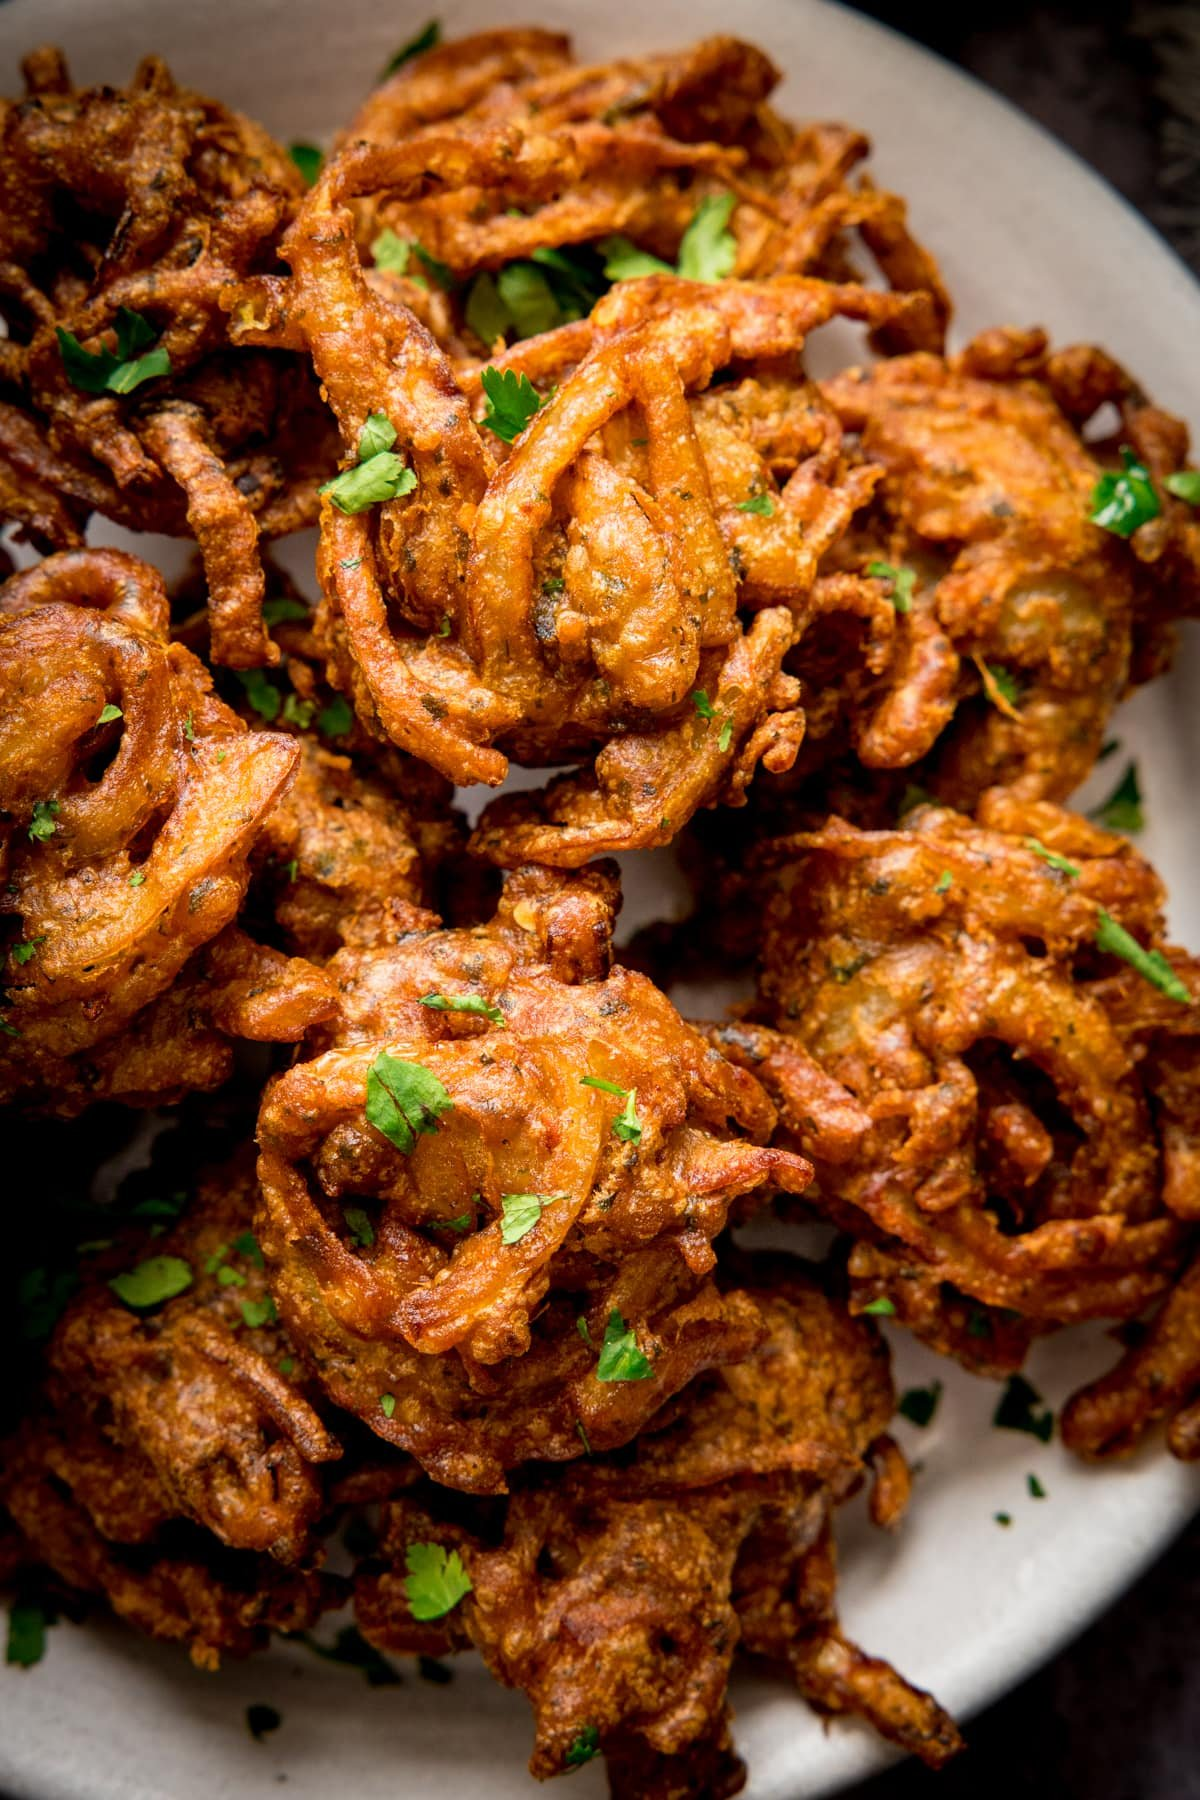 Close up of Onion bhajis on a white plate